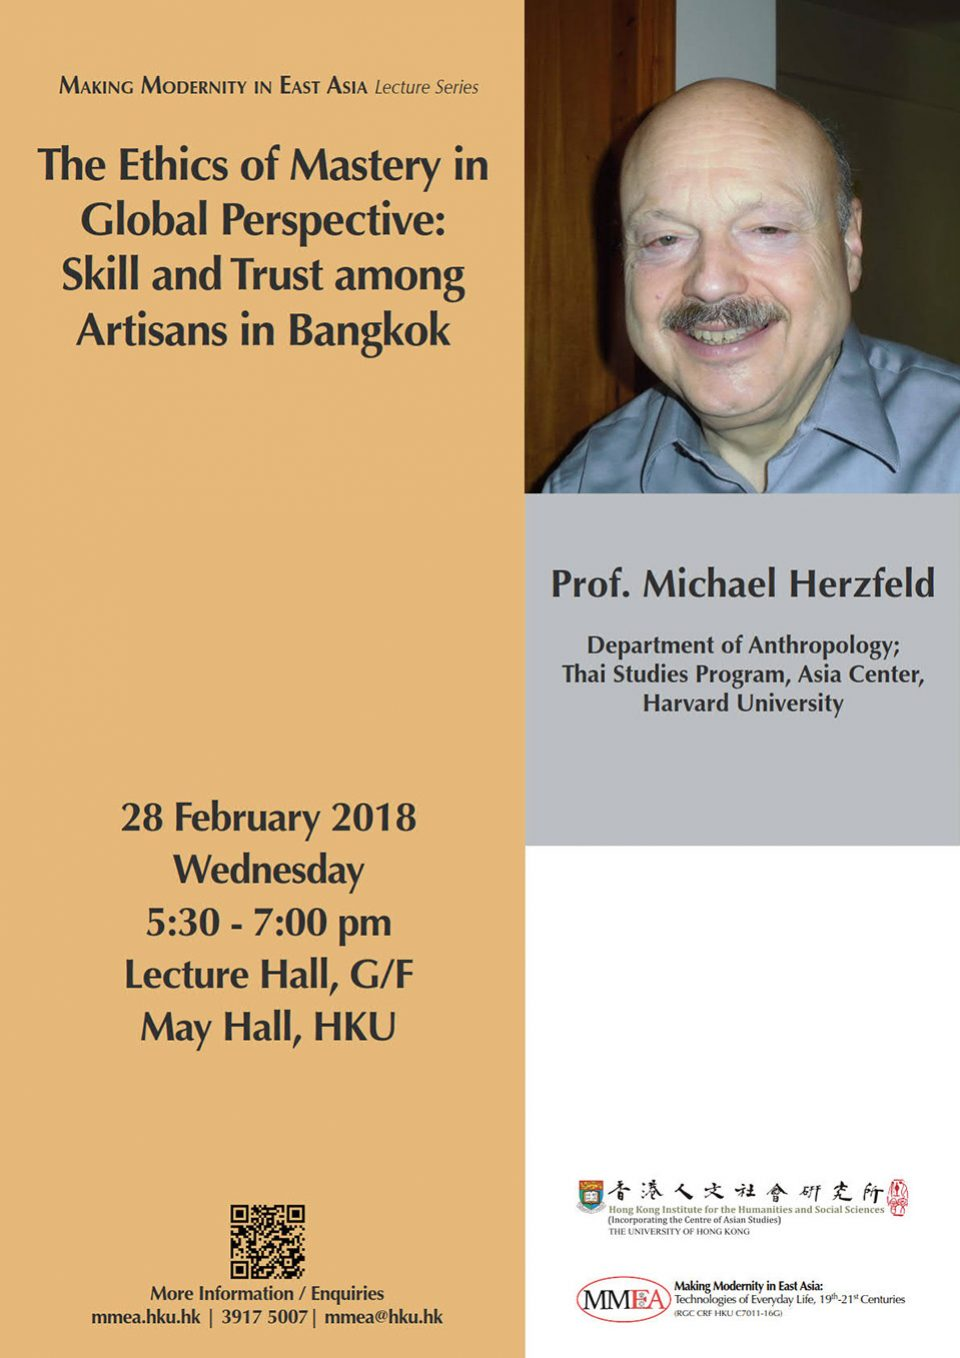 MMEA Lecture by Professor Michael Herzfeld (February 28, 2018)